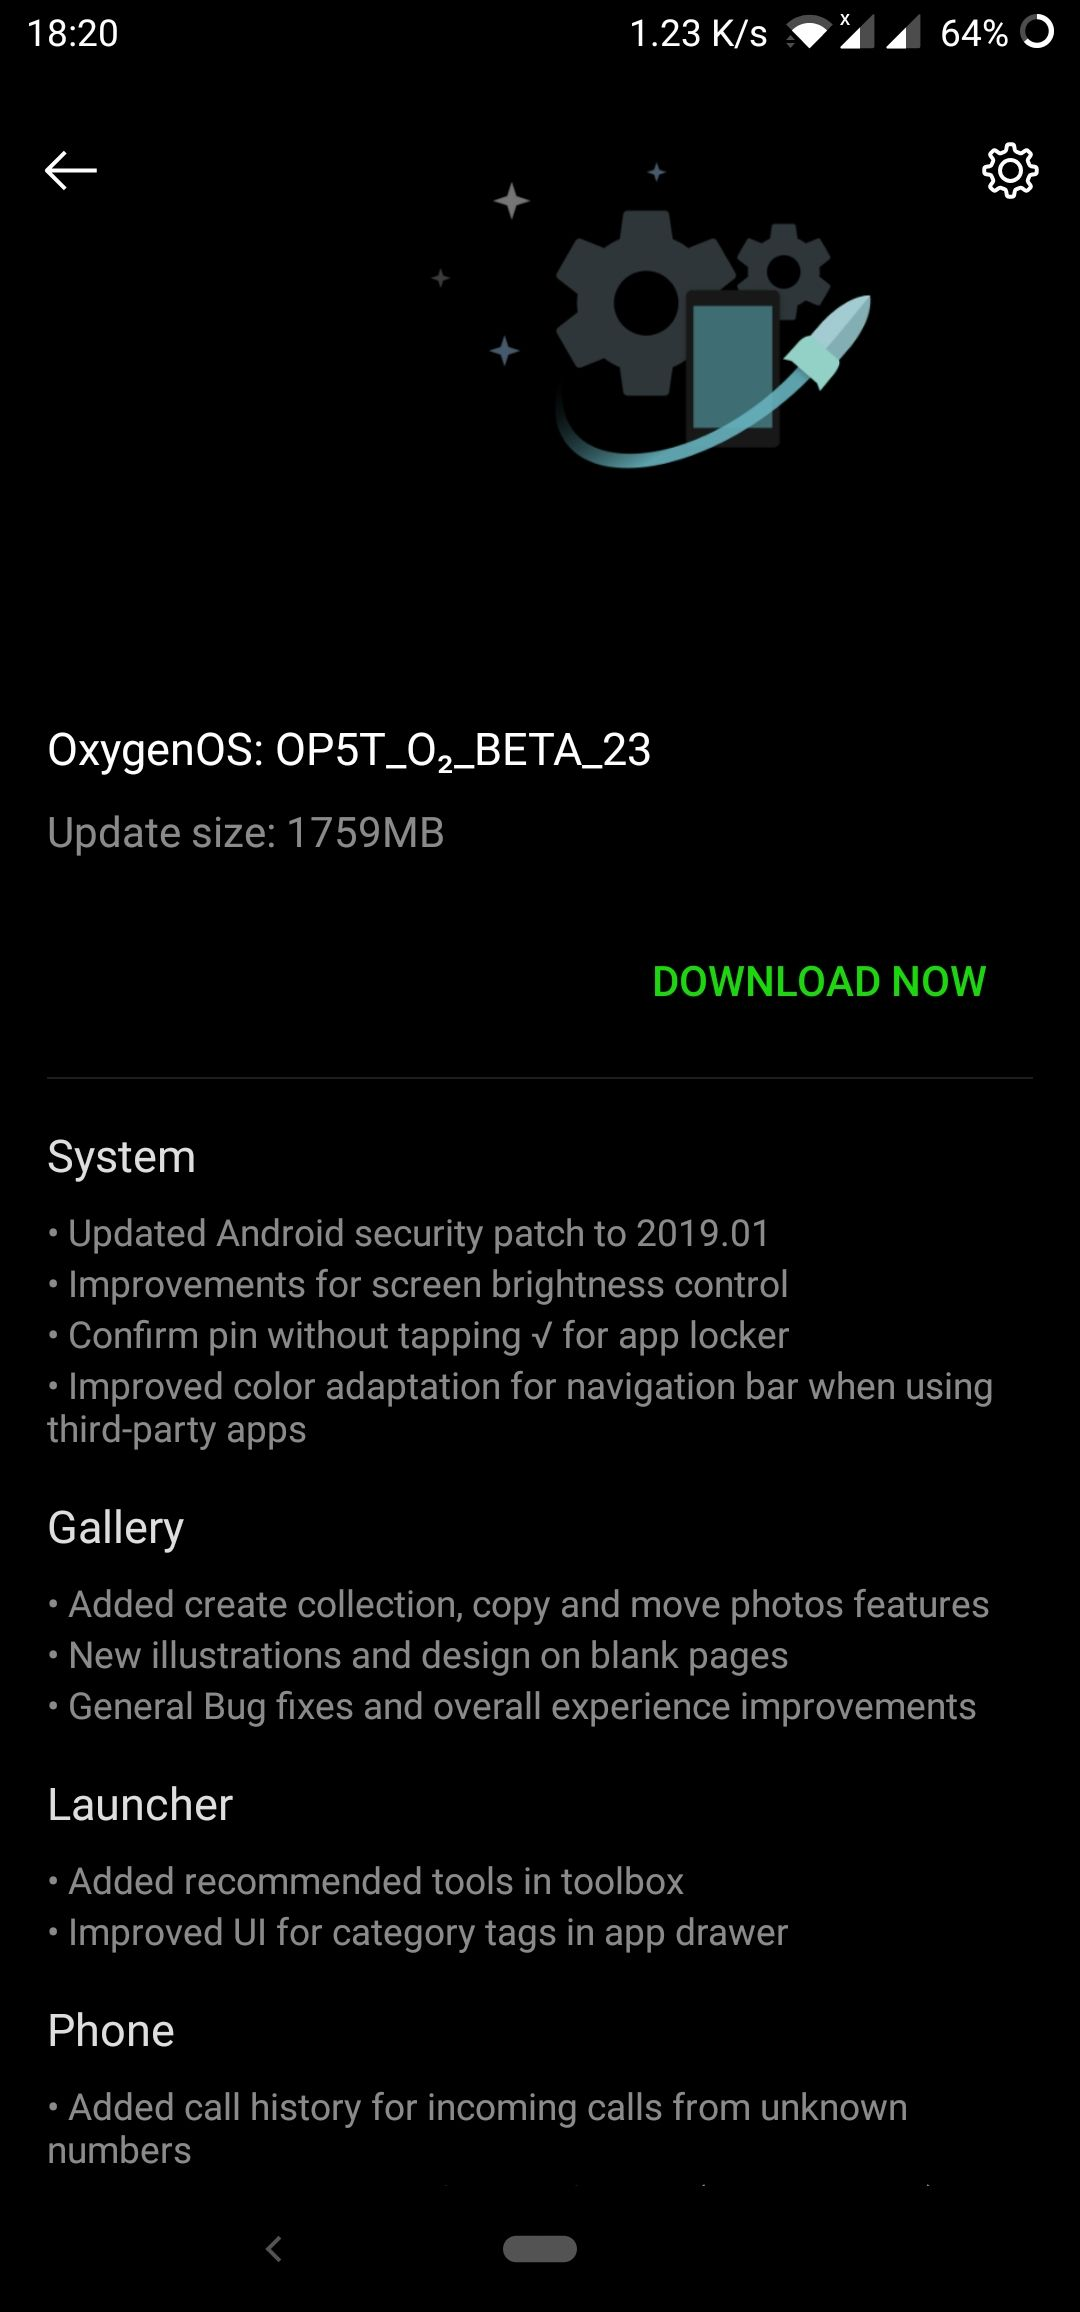 OxygenOS Open Beta 25 for the OnePlus 5 and Open Beta 23 for OnePlus